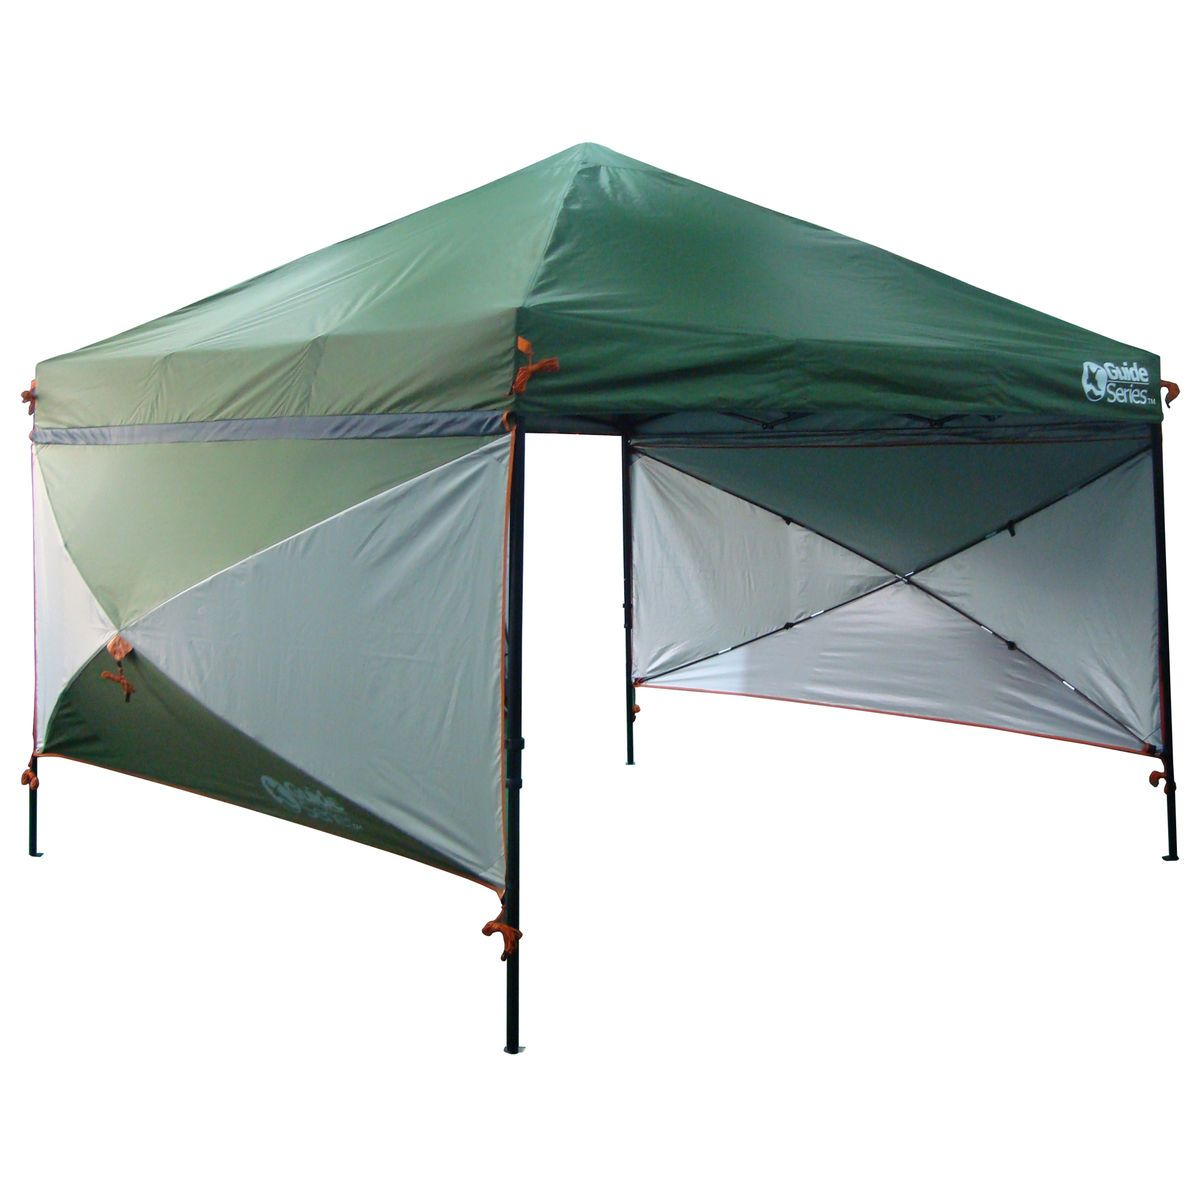 Guide series sports/beach canopy-711226 gander mountain. For the.